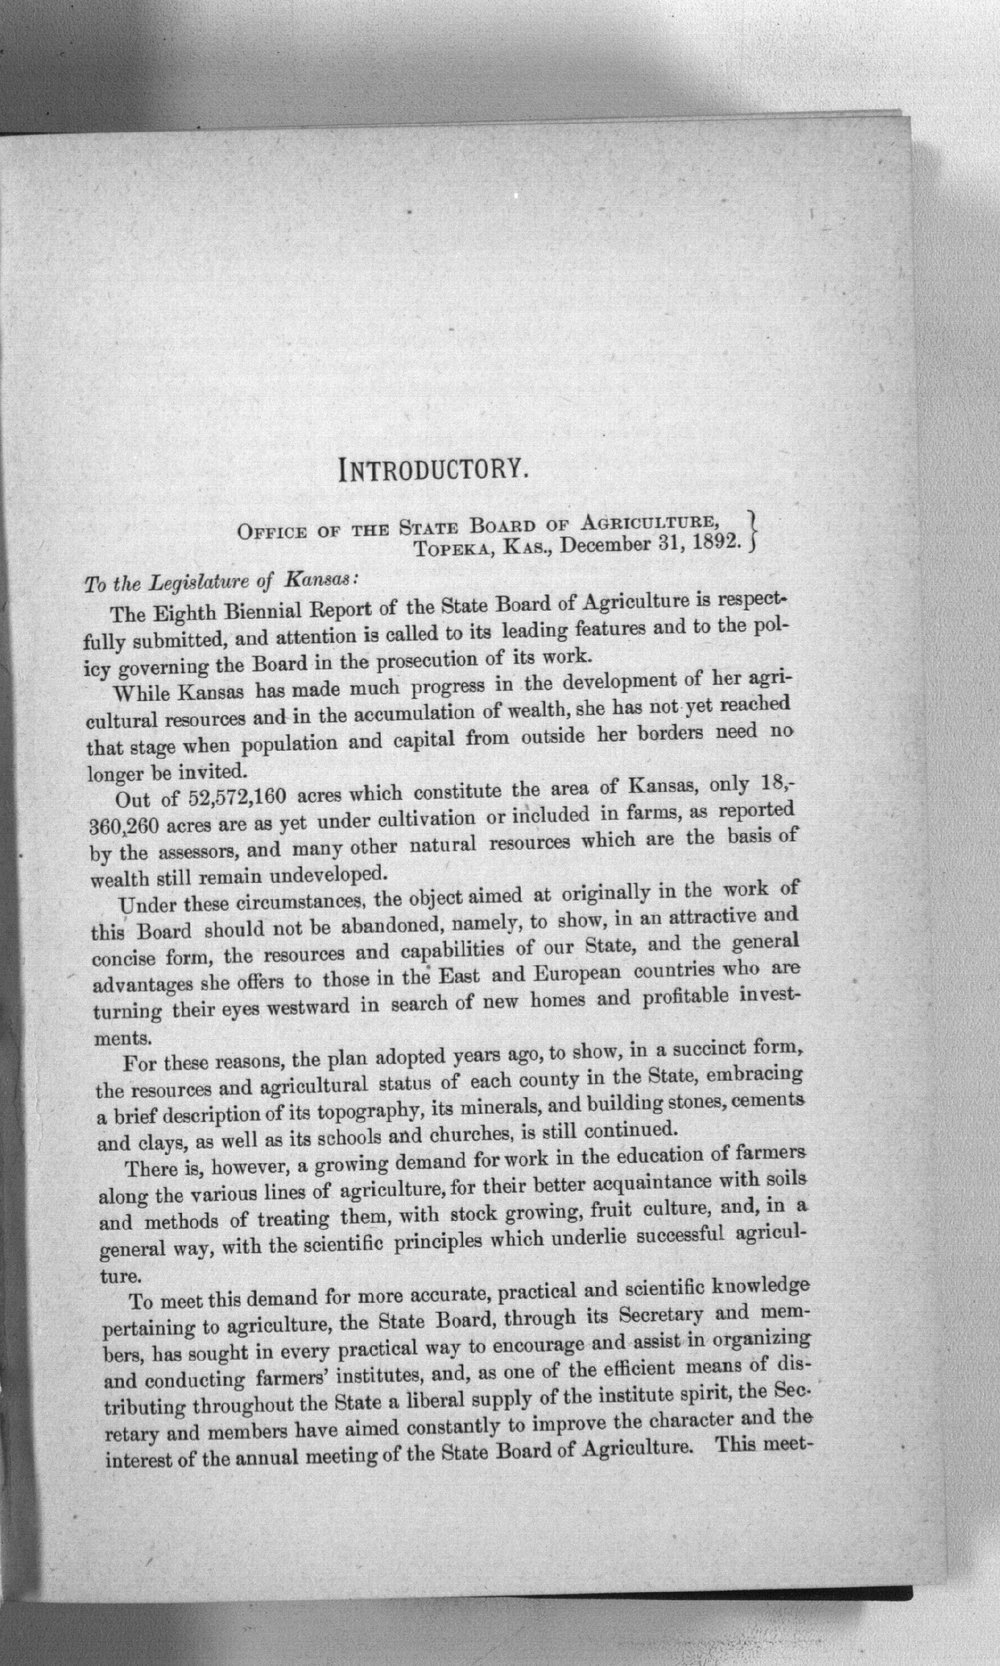 Eighth biennial report of the Kansas State Board of Agriculture, 1891-1892 - Introductory